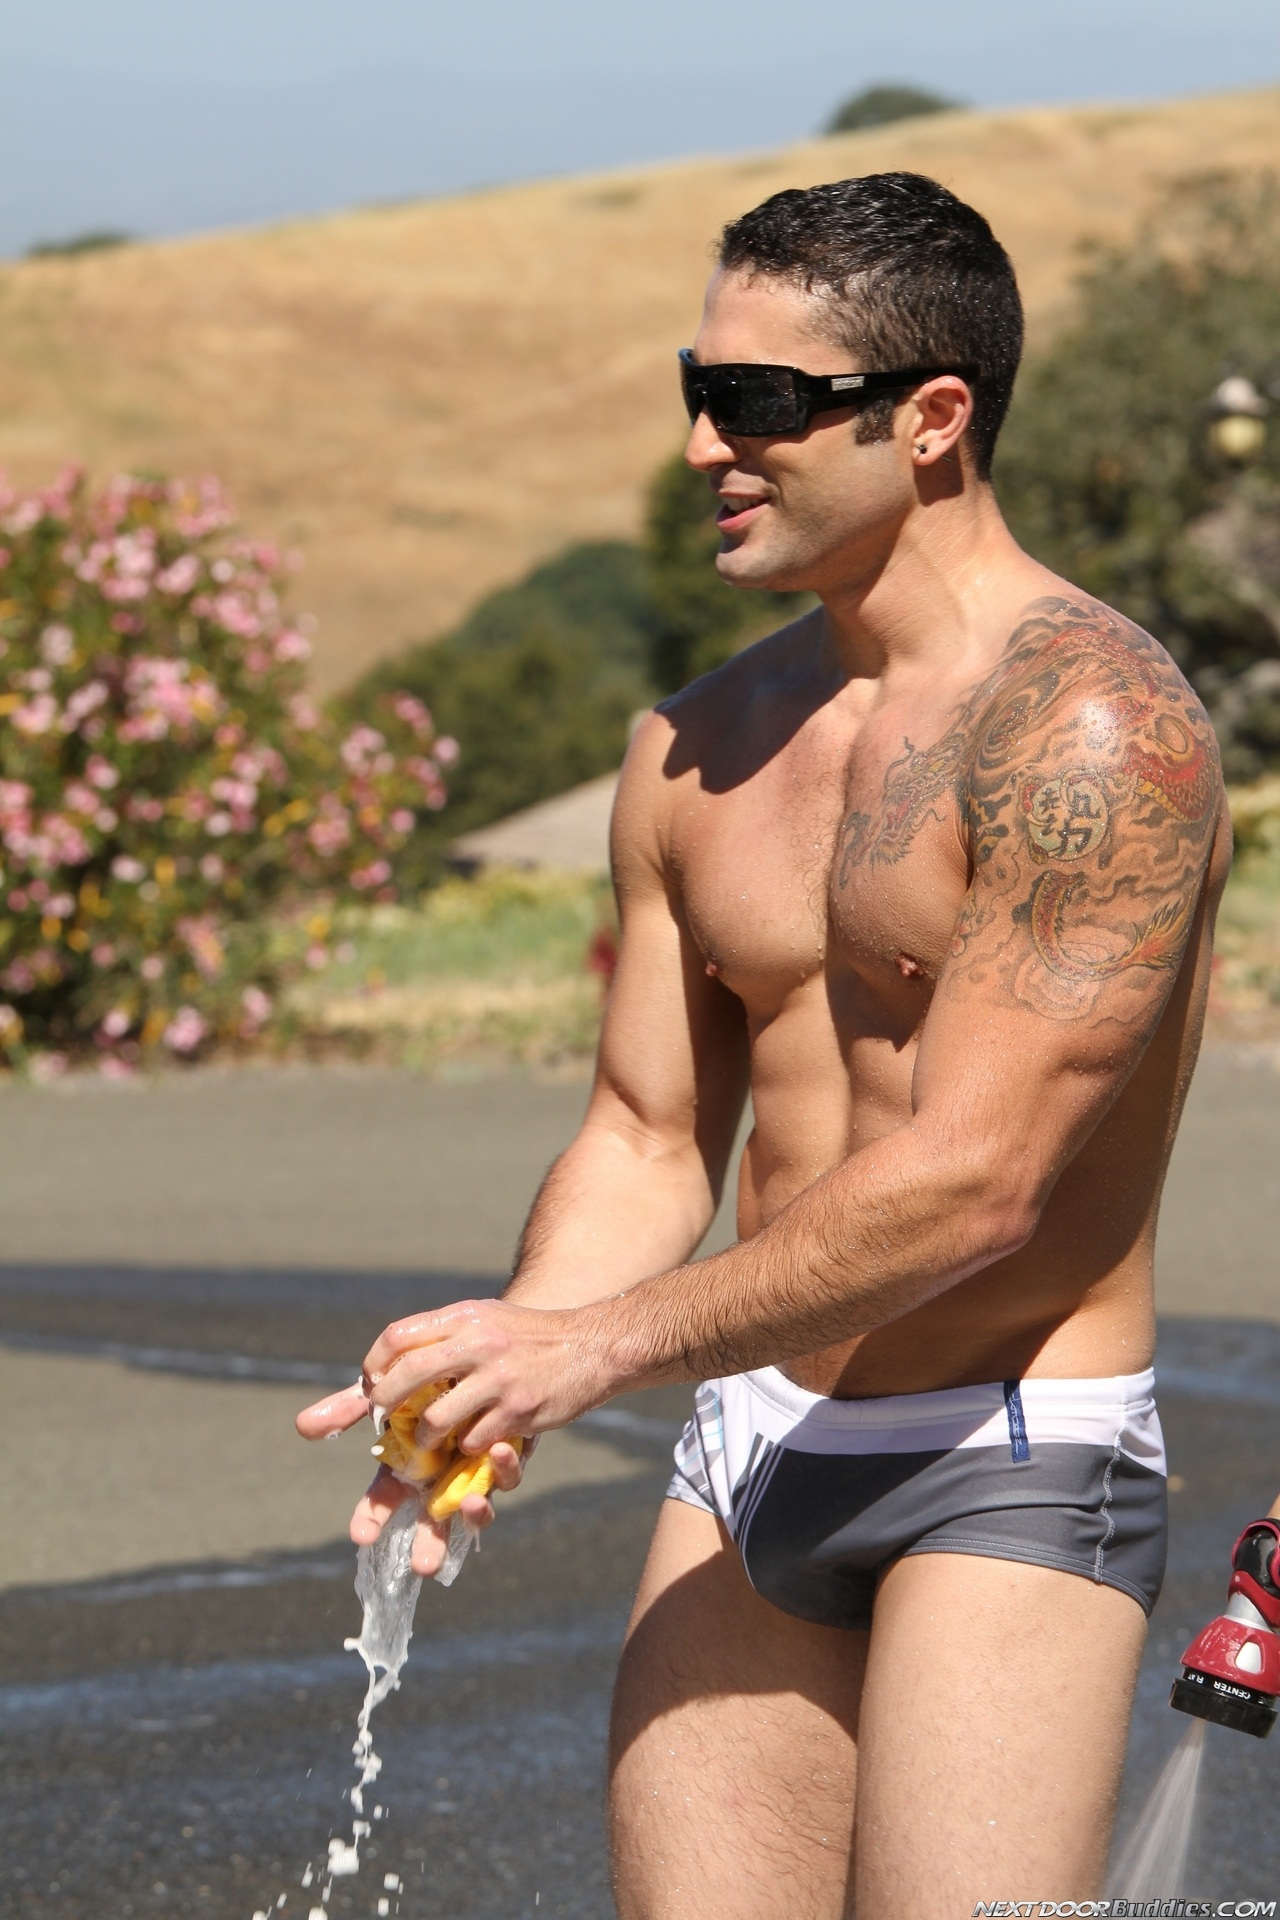 Marcus-Mojo-Brody-Wilder-Johnny-Torque-Rod-Daily-Donny-Wright-washing-a-car-in-Suds-Studs-Next-Door-Studios-36